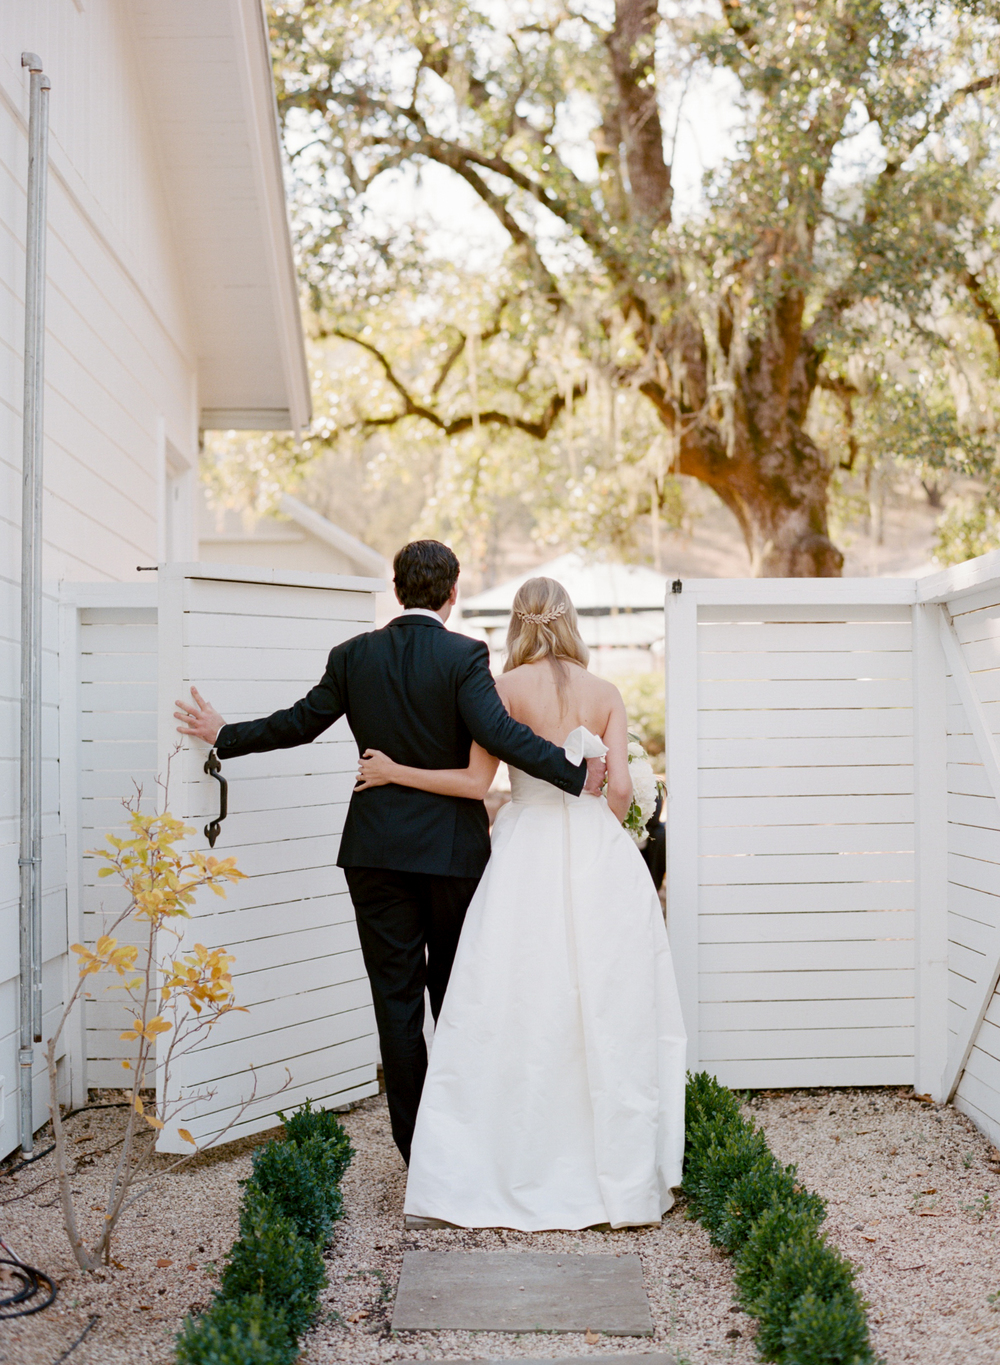 Bride and groom walk through gate arm in arm; Sylvie Gil Photography